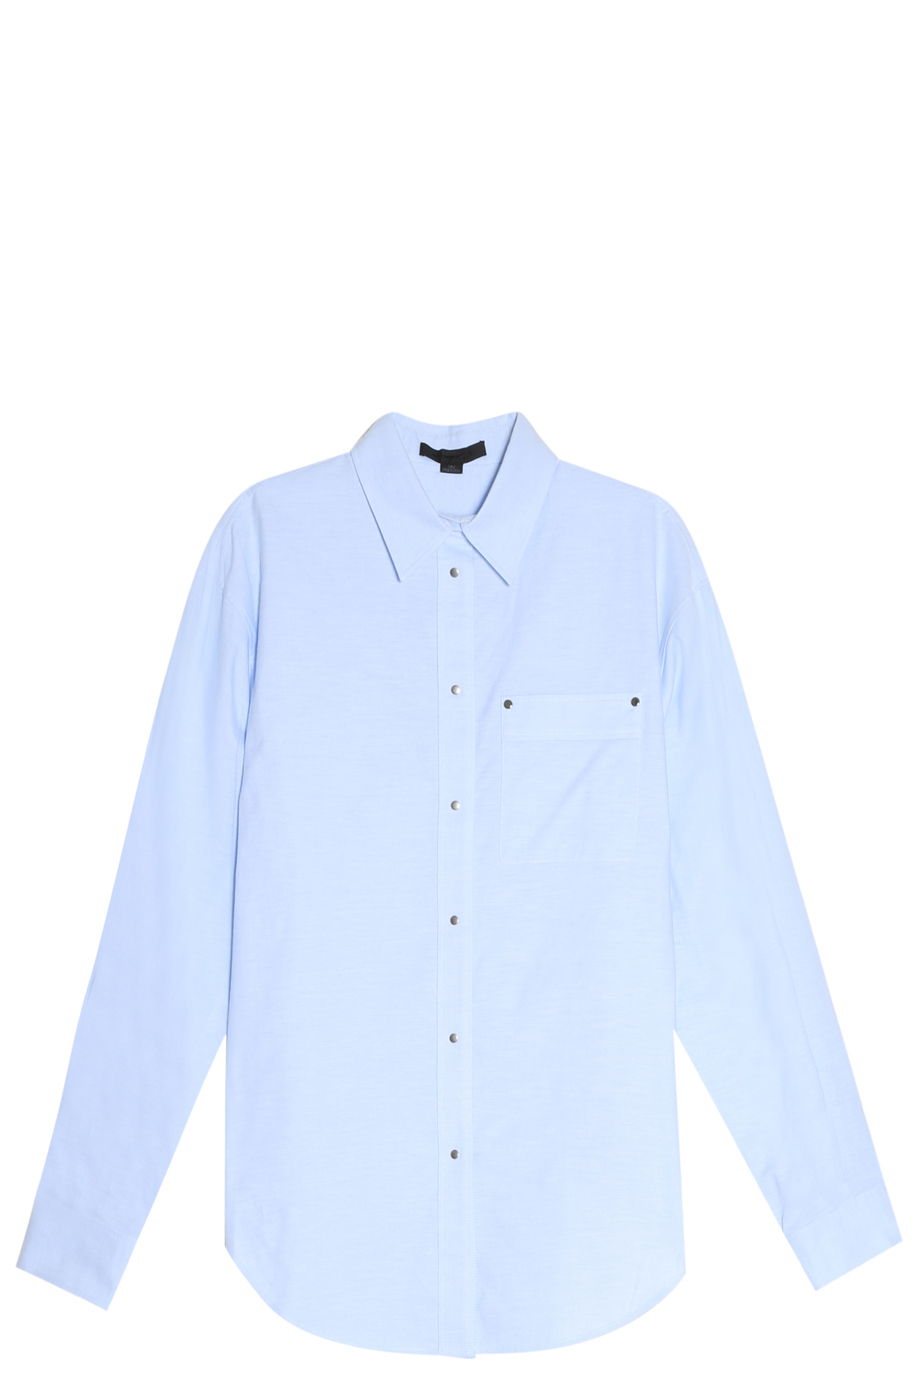 alexander wang oversized shirt in blue white lyst. Black Bedroom Furniture Sets. Home Design Ideas